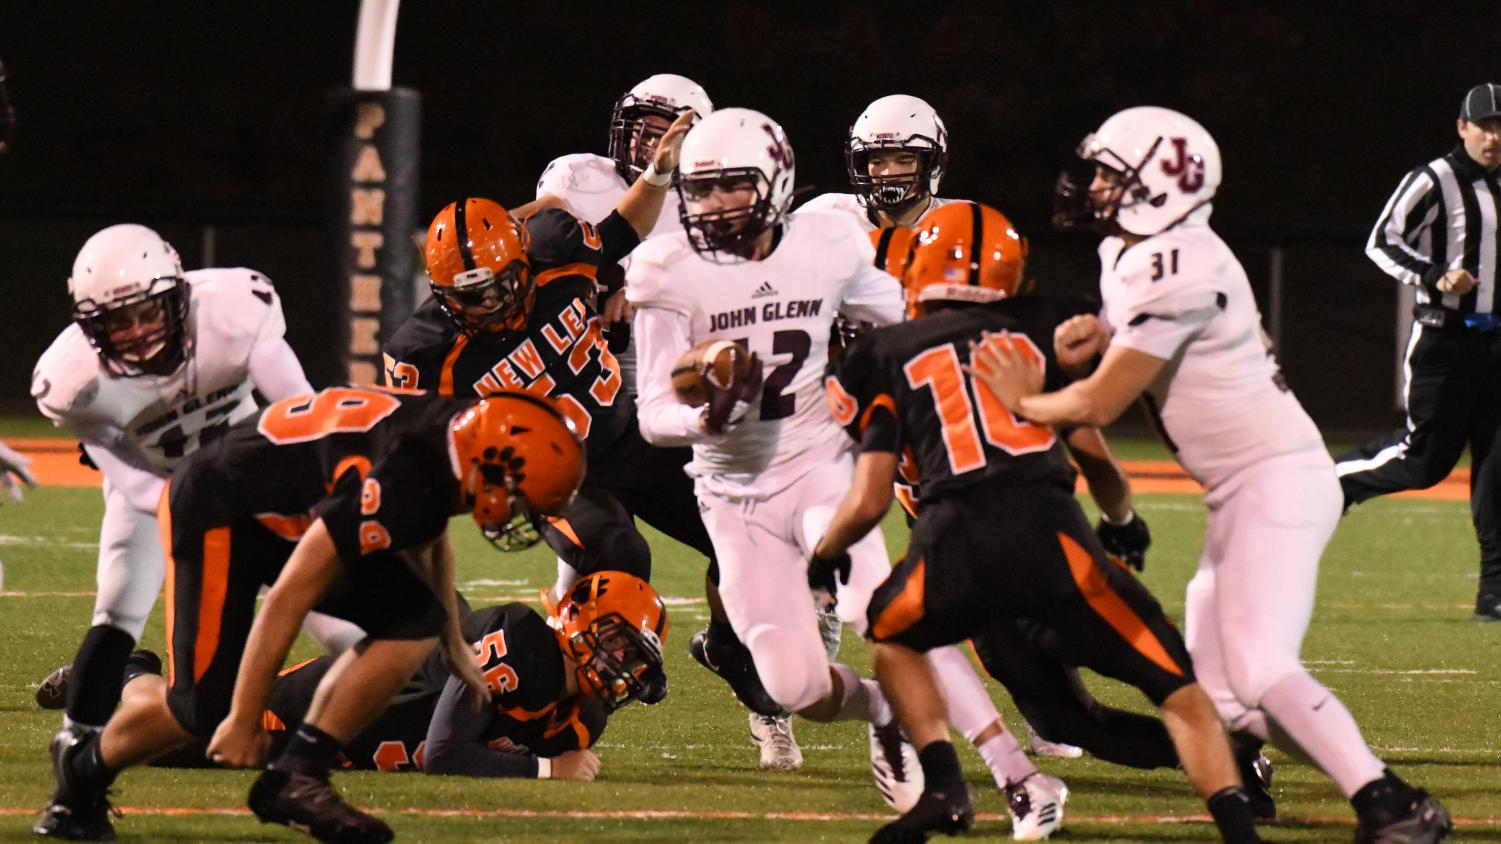 John Glenn solidified their playoff standing once again with their fifth-straight win.